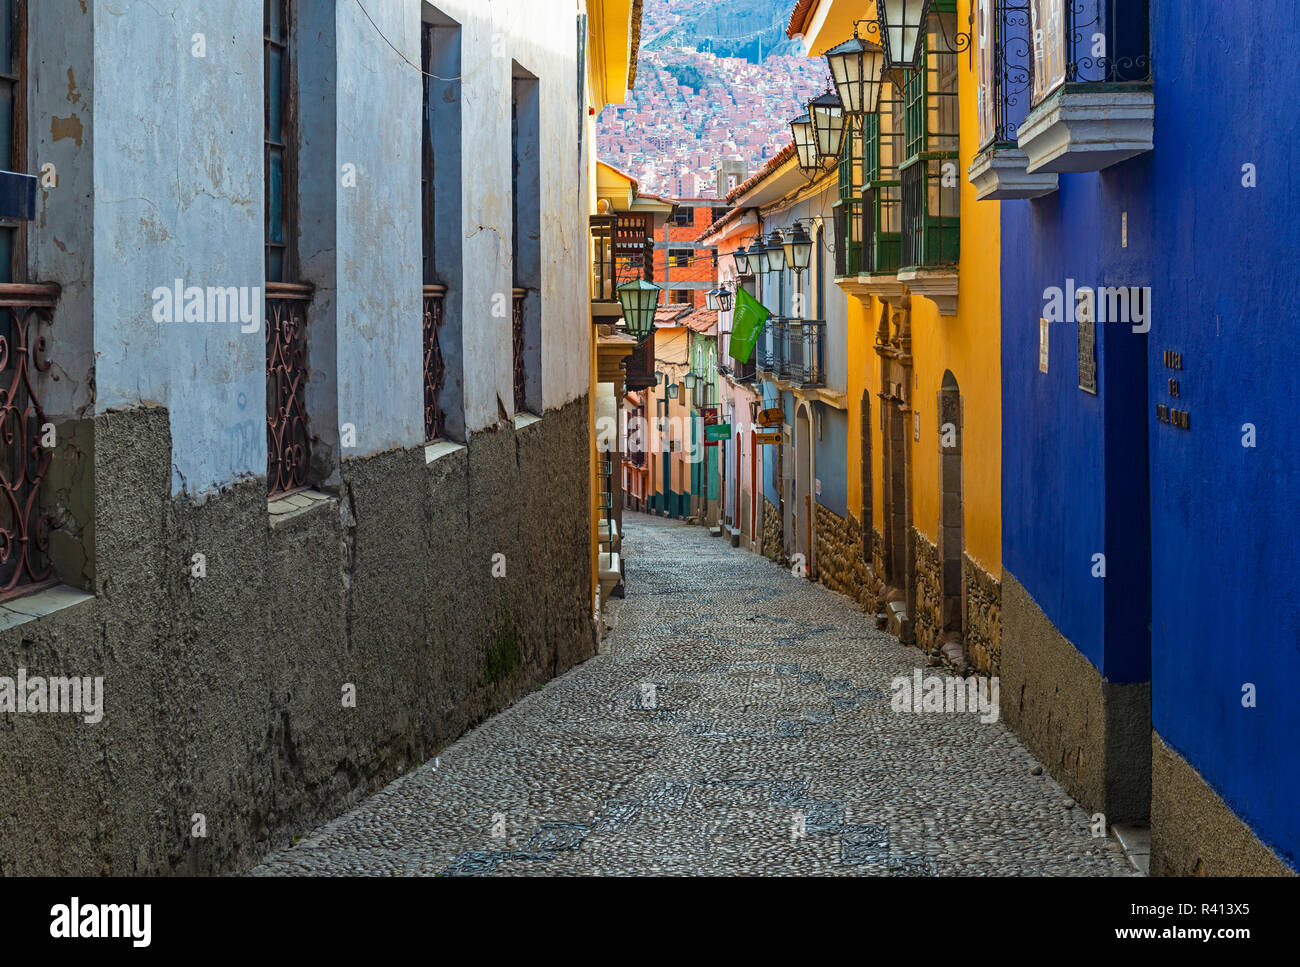 Cityscape of the architecture of La Paz in the Jaen street with its colourful Spanish colonial architecture style, Bolivia. - Stock Image